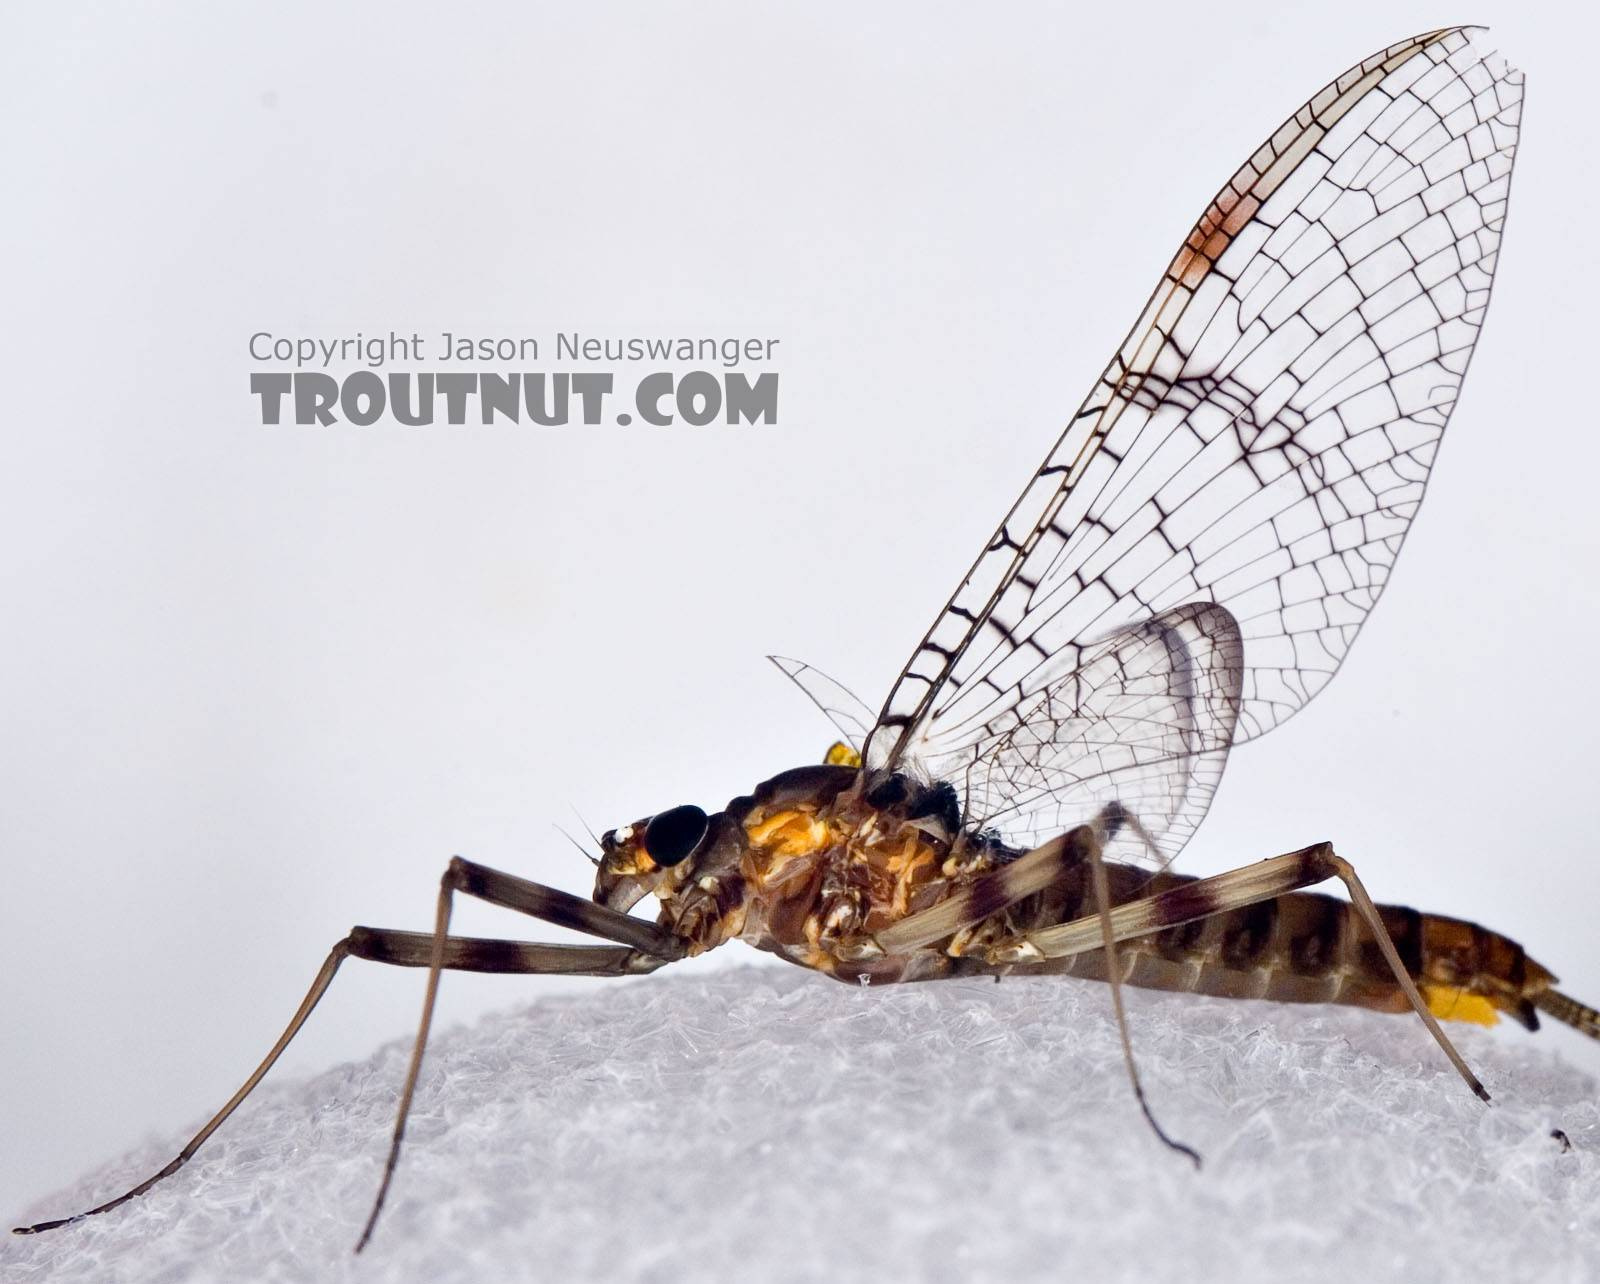 I had to photograh her against a white backgrond to show the dark venation in her clear wings.  Female Maccaffertium pudicum Mayfly Spinner from Mystery Creek #42 in Pennsylvania